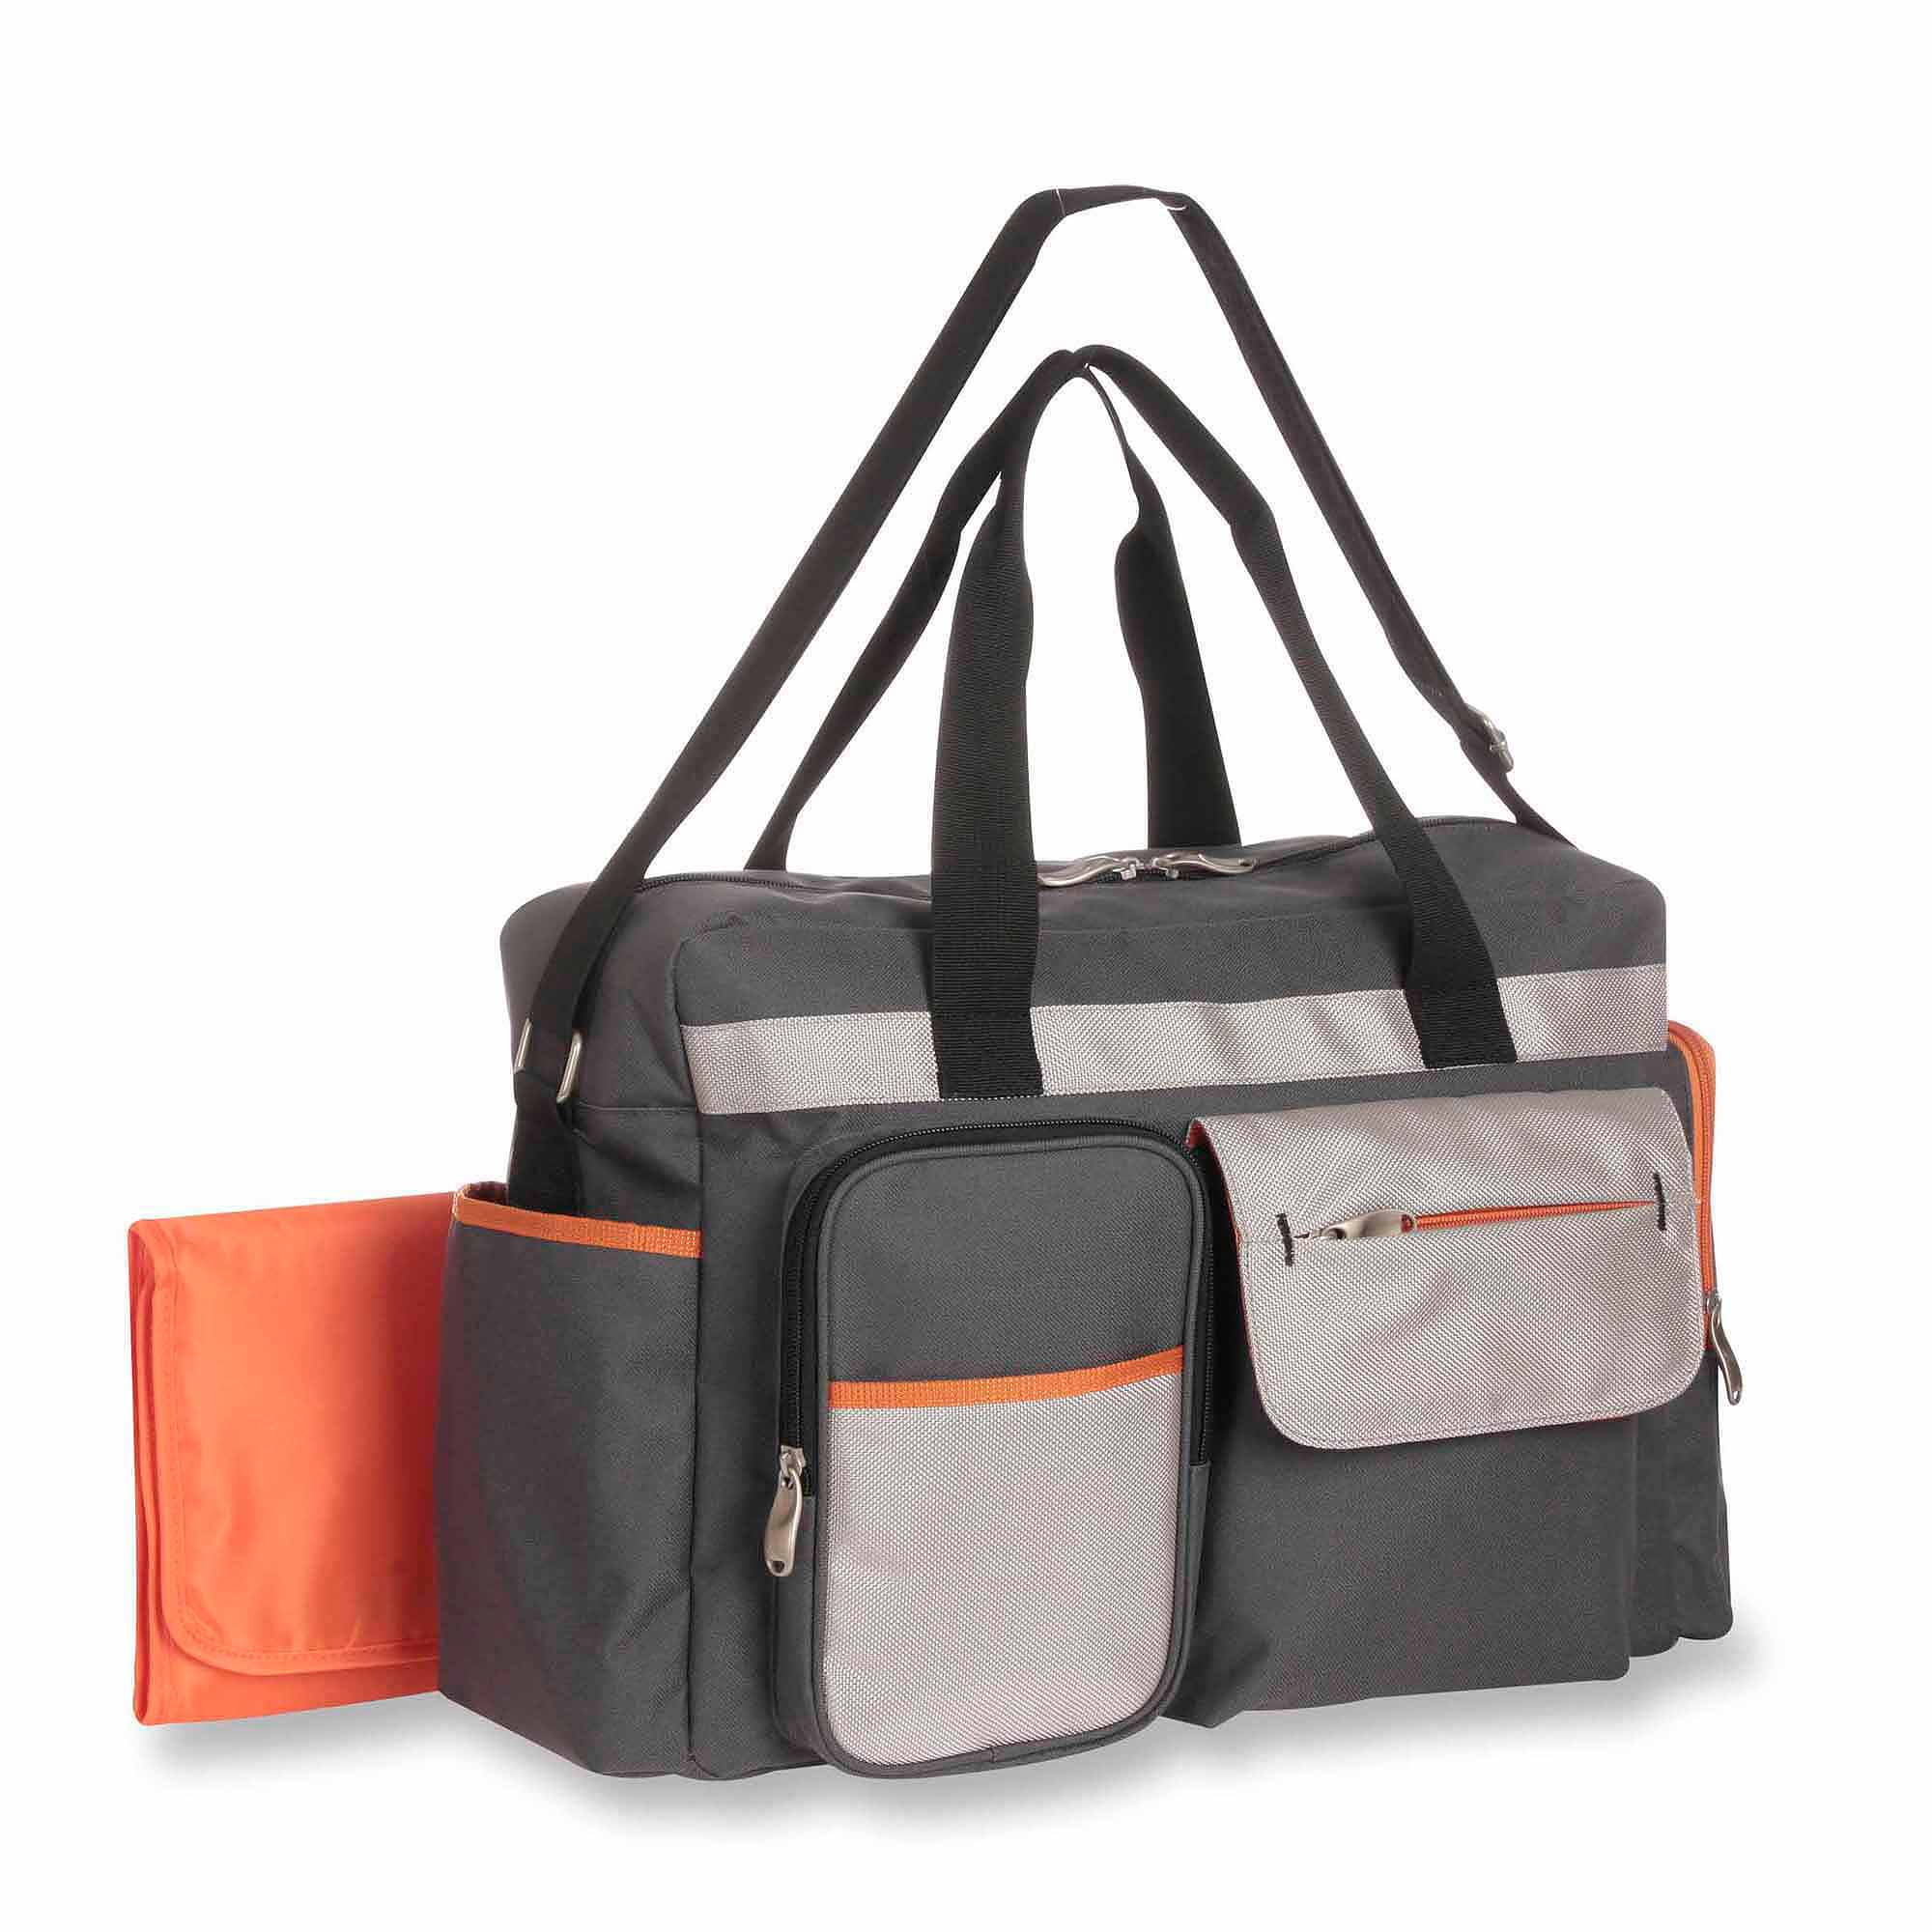 Graco Tangerine Duffle Diaper Bag, Orange/Gray